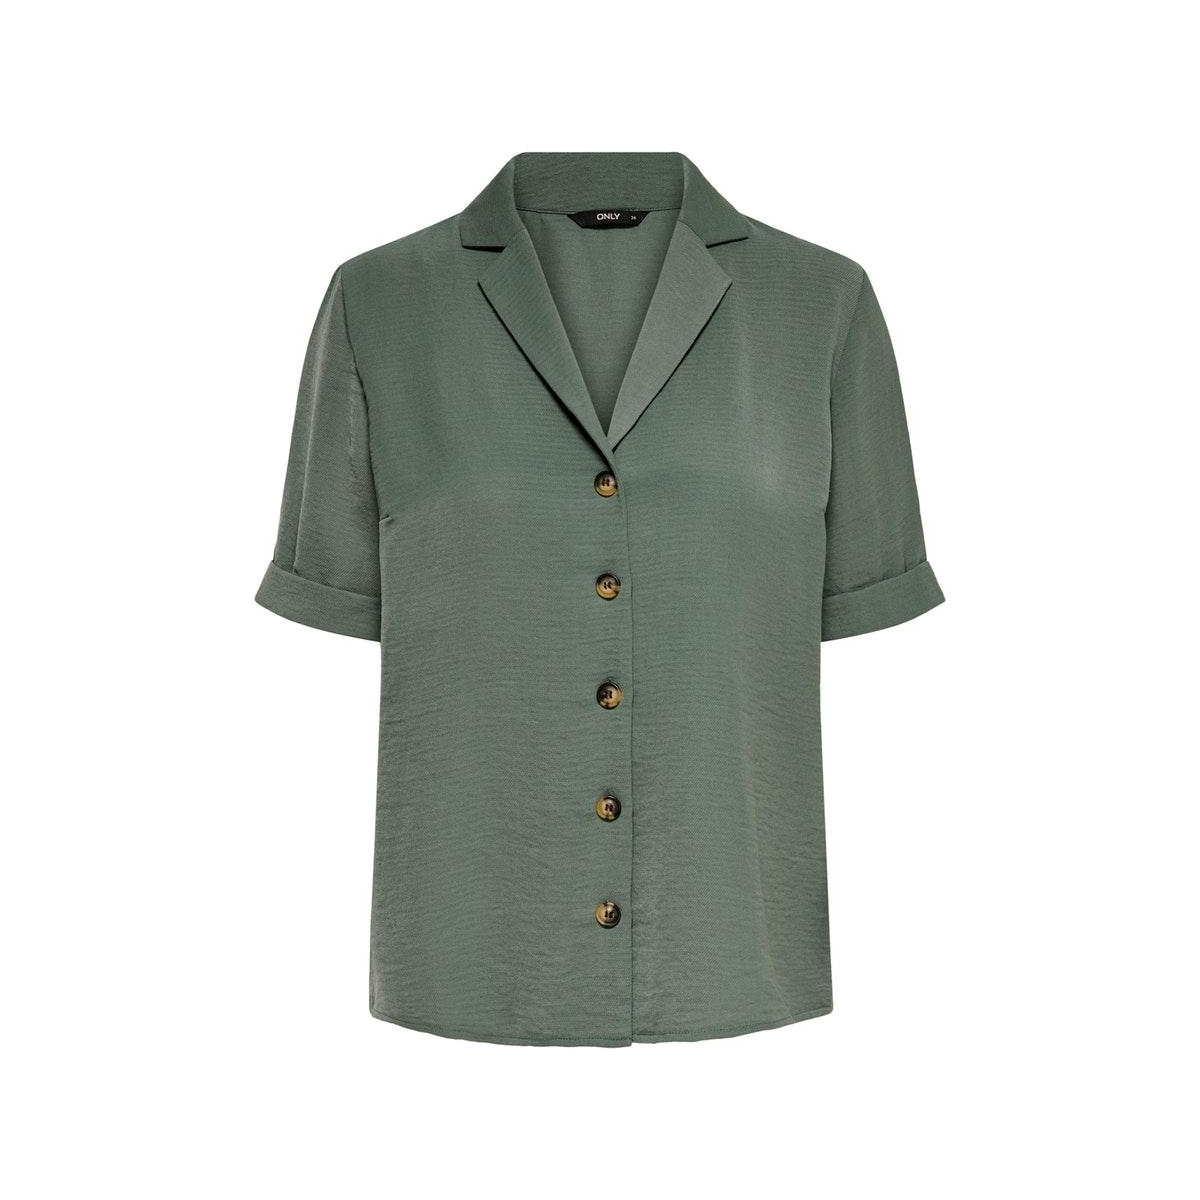 onlsky s/s shirt solid wvn 15181018 only blouse laurel wreath